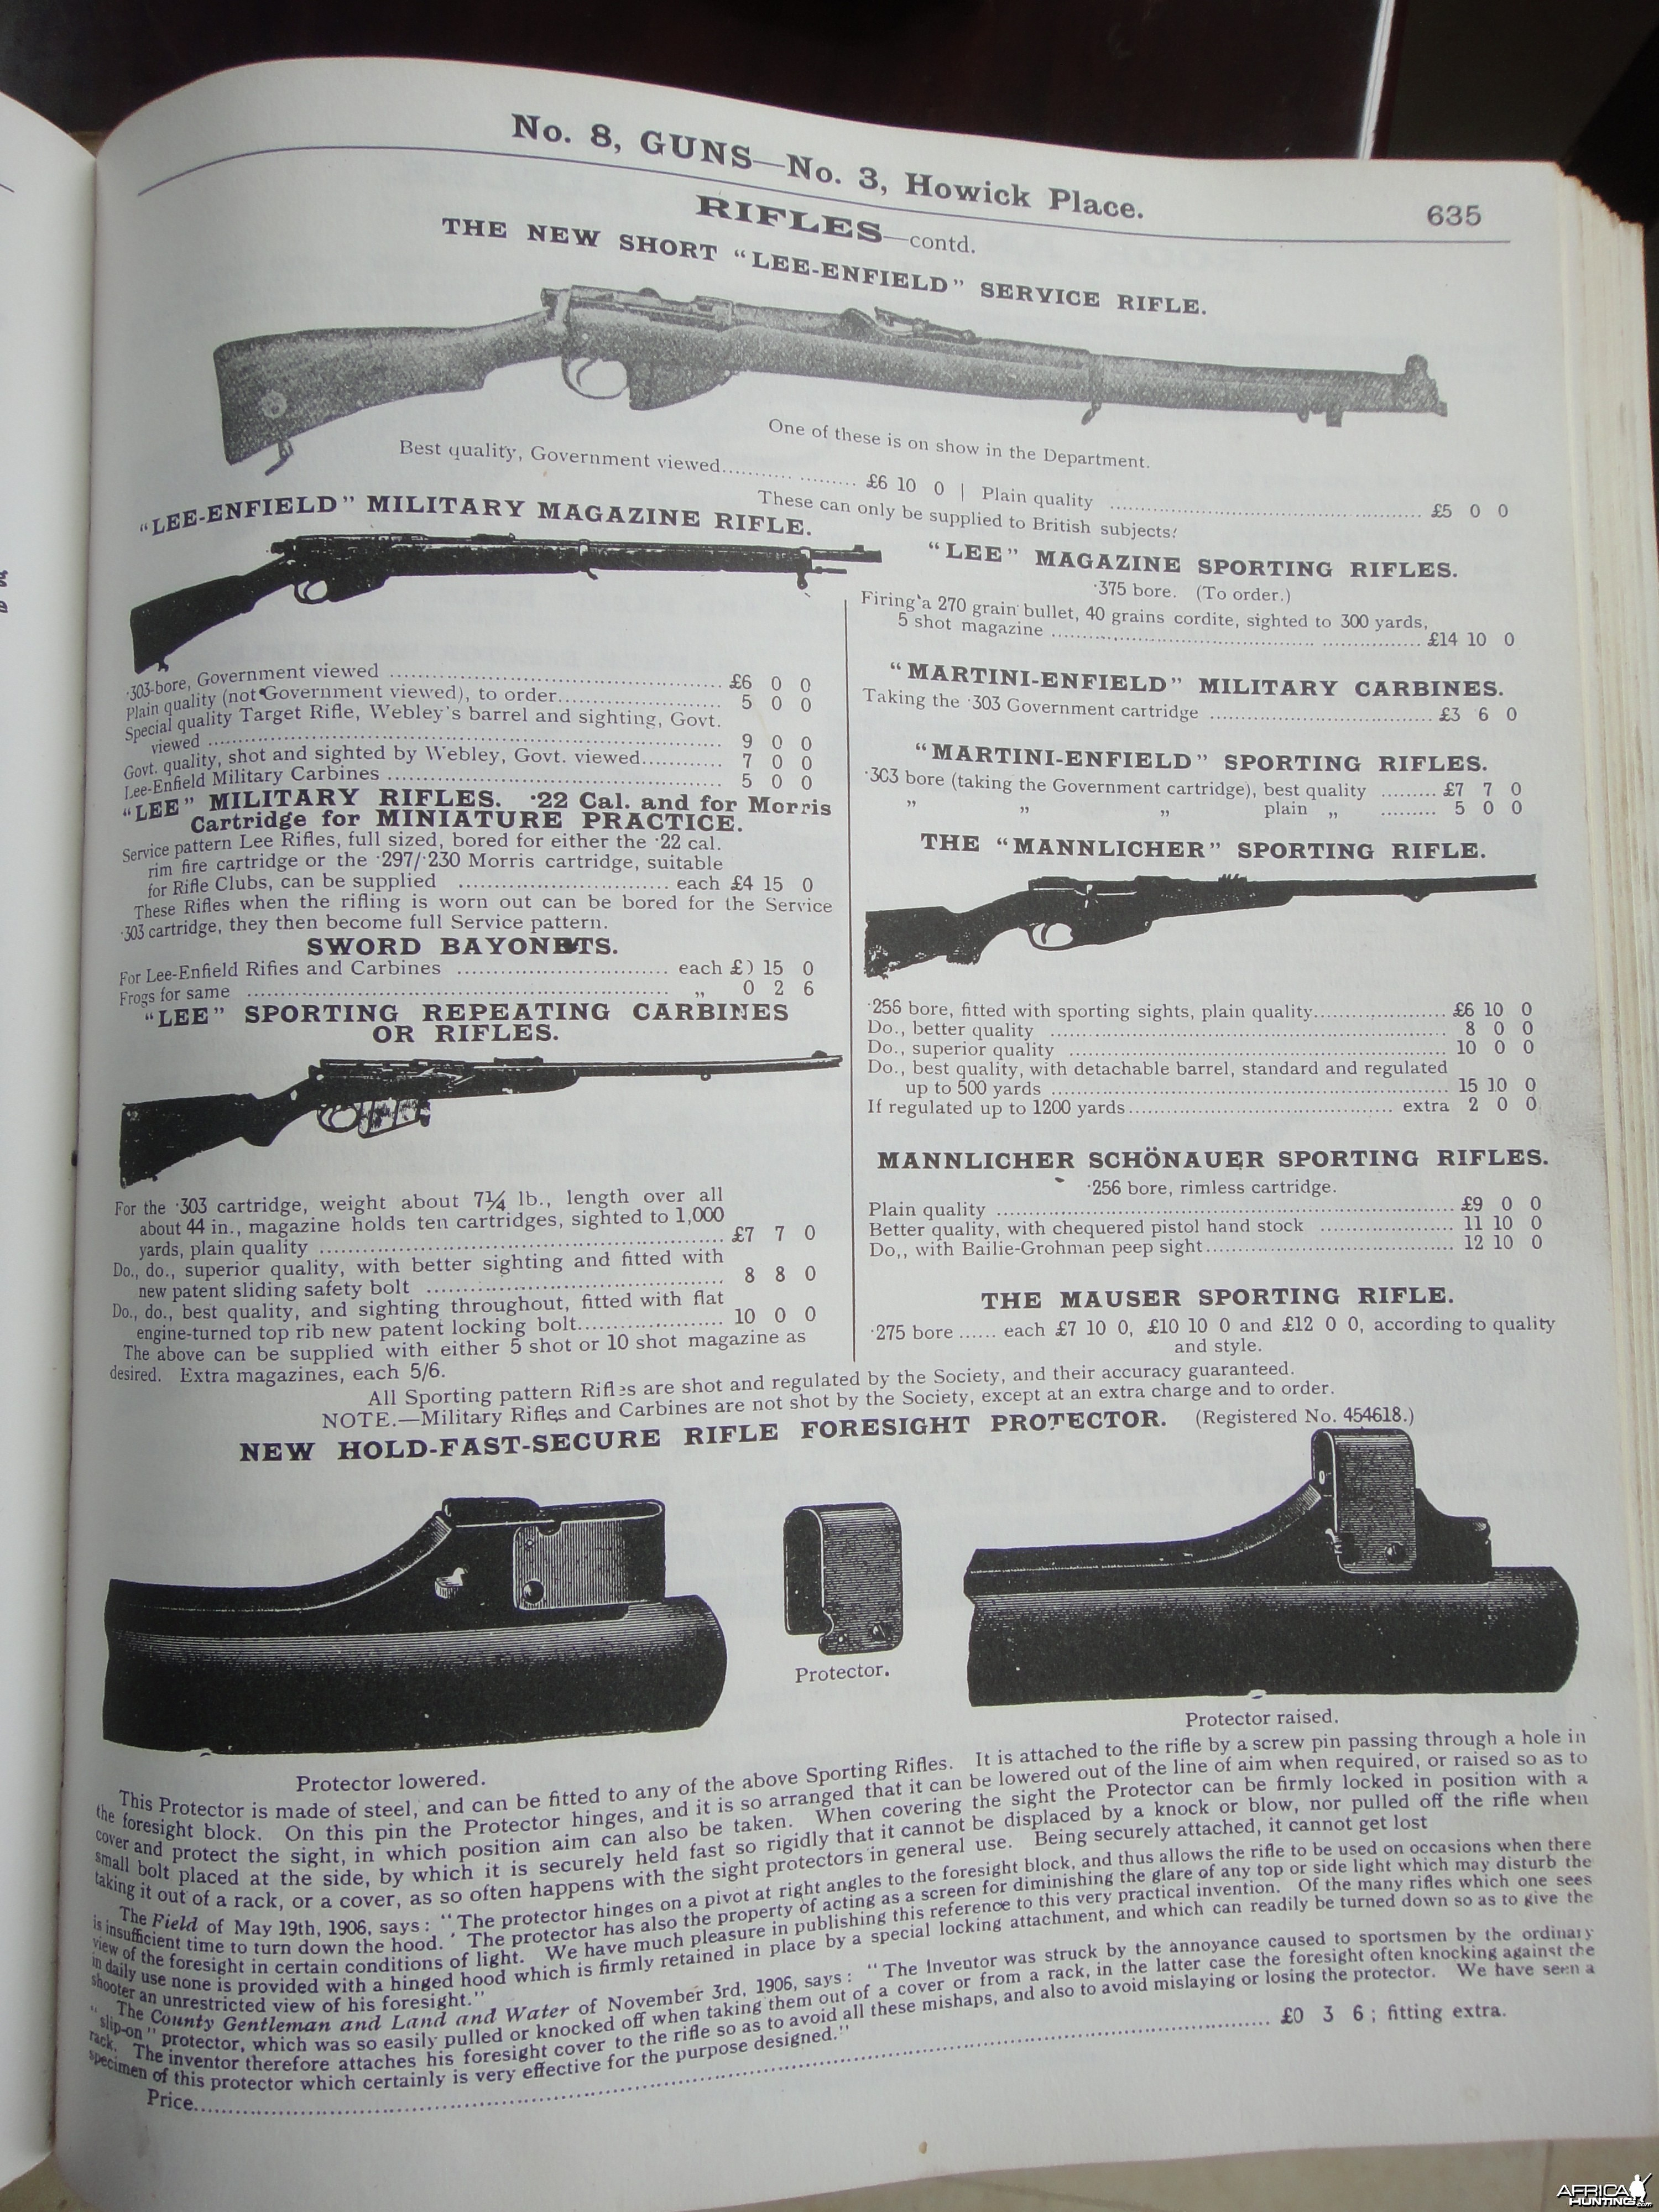 Express Rifles suitable for Big Game Shooting